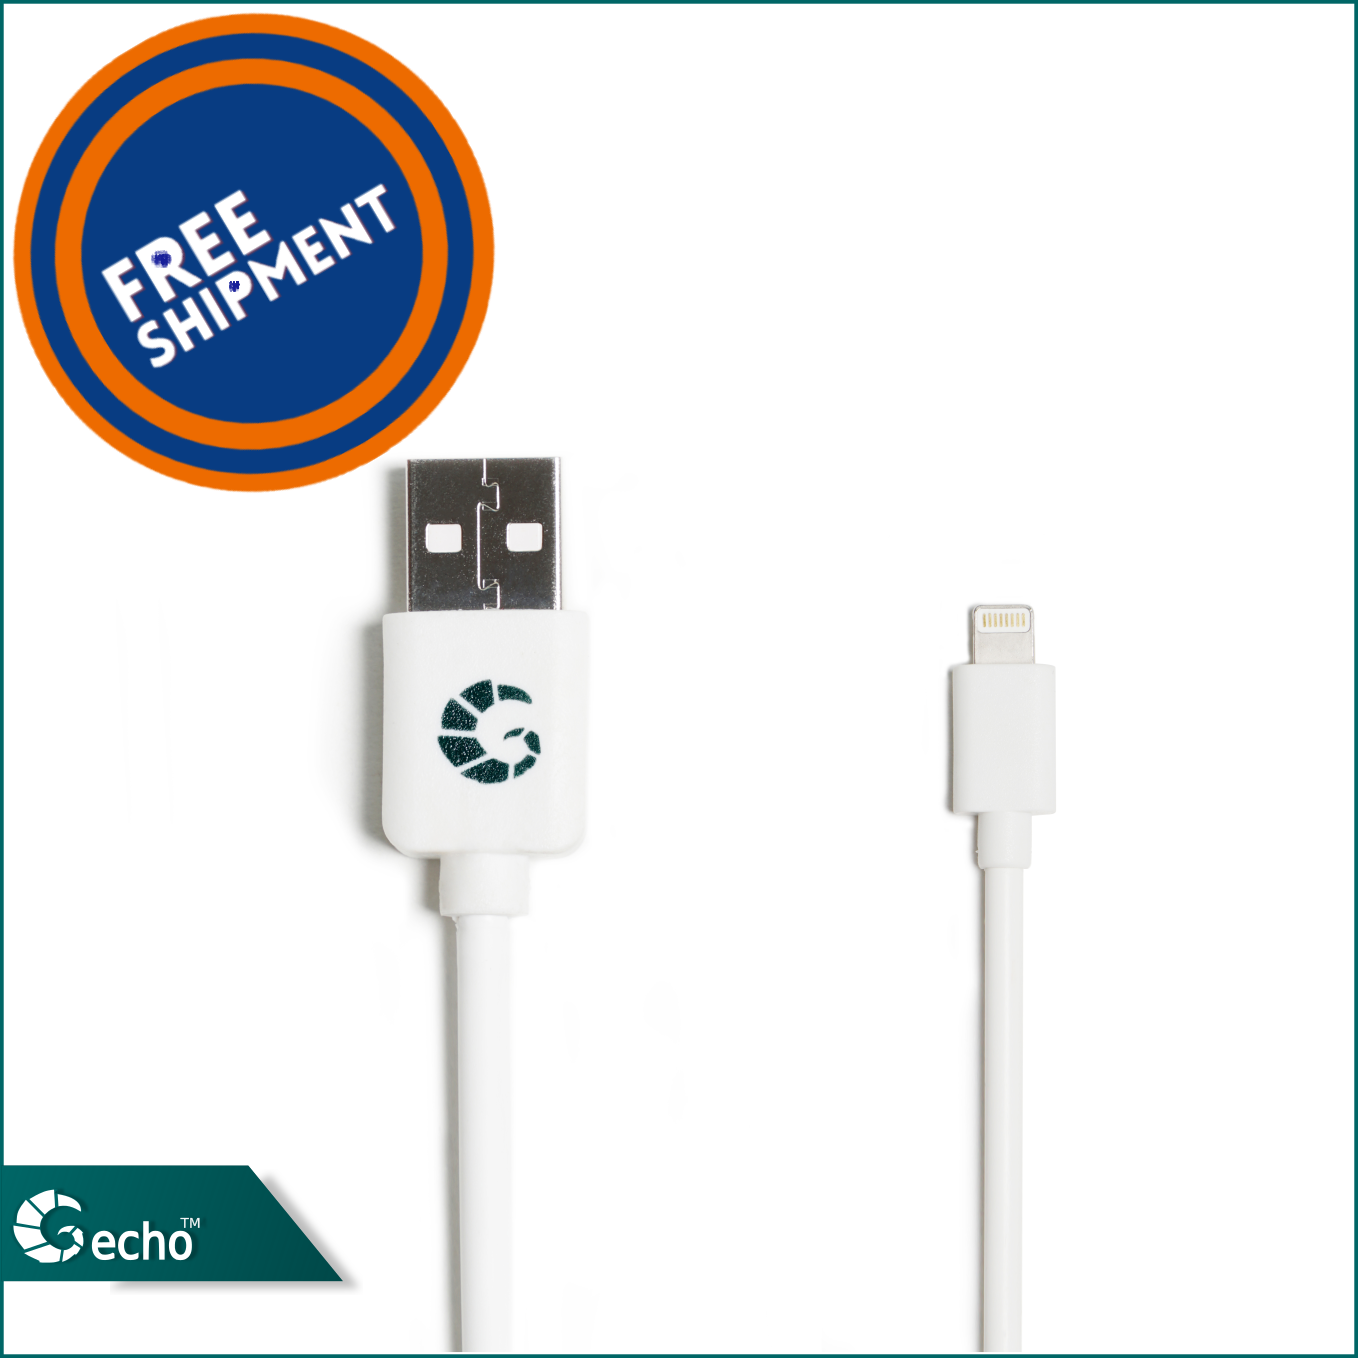 Lightning USB Data Cable - Charging Cable - Iphone Cable - For iPhones and iPads and iPods - USB Cable By Gecho